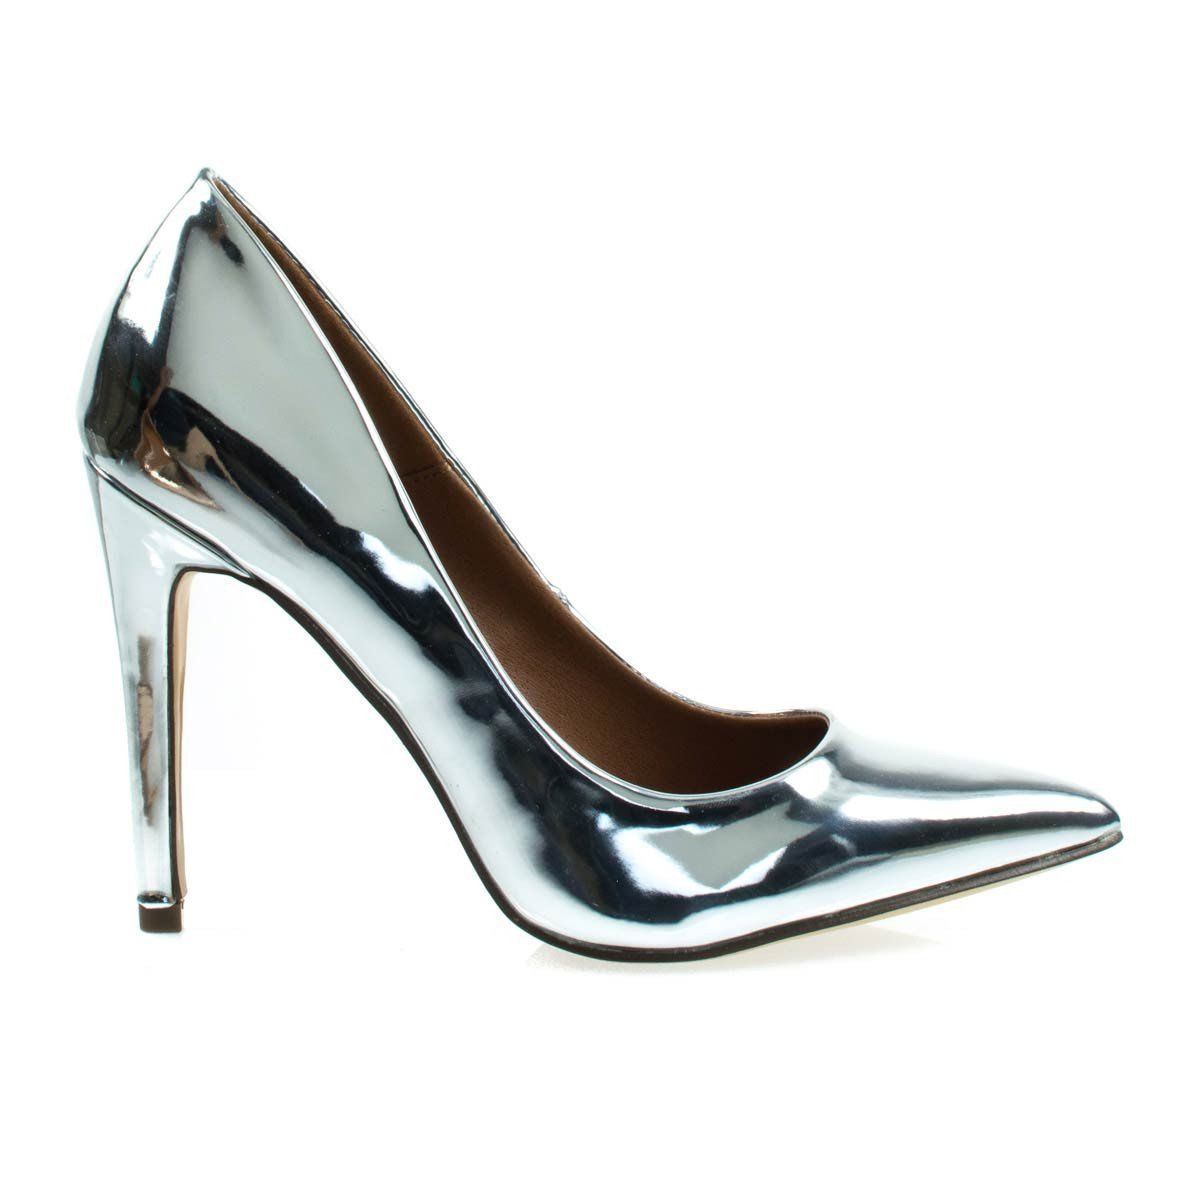 d589d2f1845 Dress to the nines with these high heel dress pump